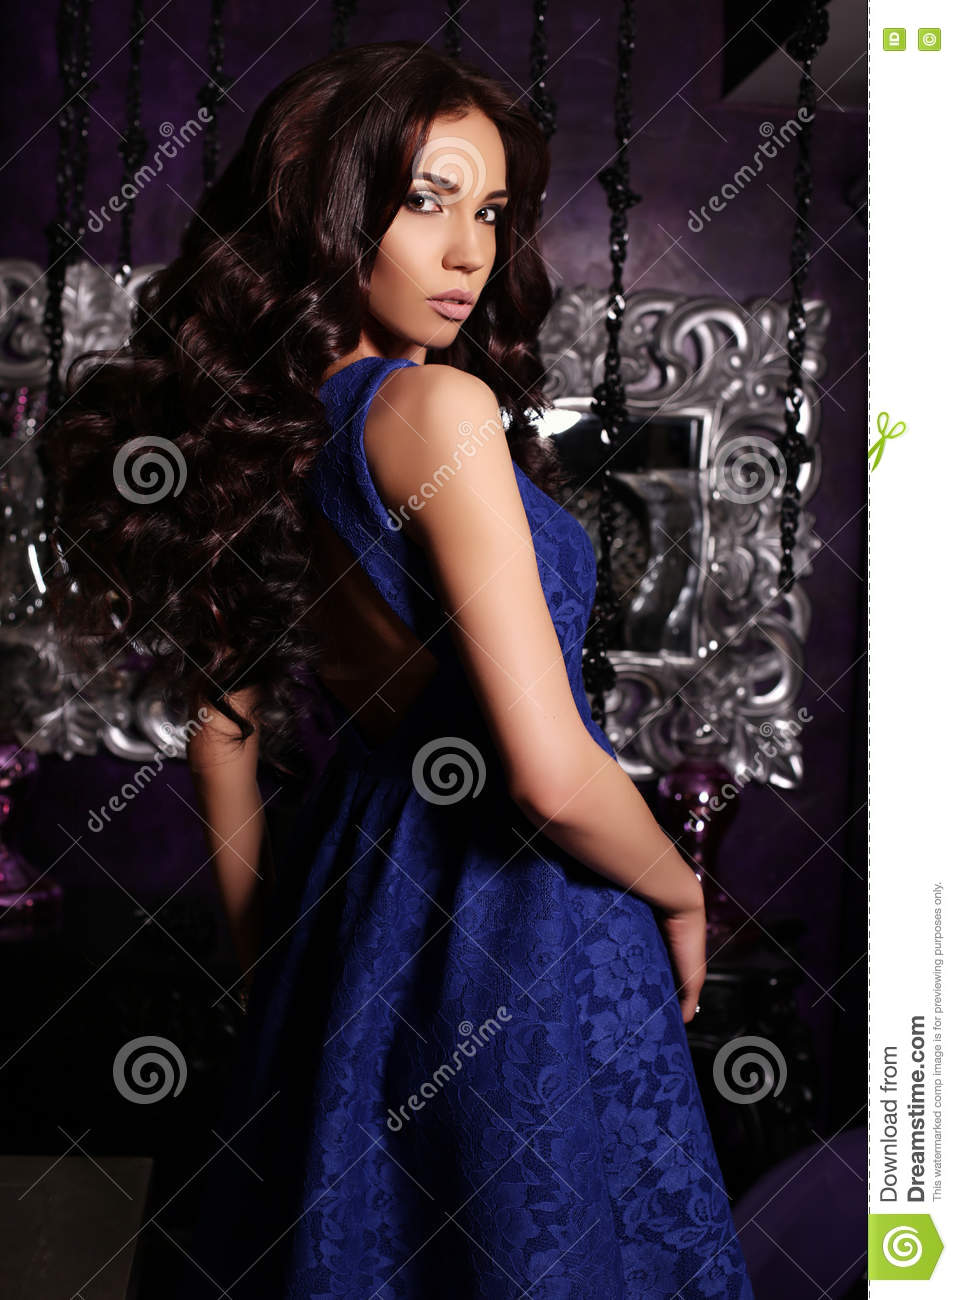 f4be3fd2b75 Fashion interior photo of gorgeous woman with long dark hair in luxurious  dress with accessories